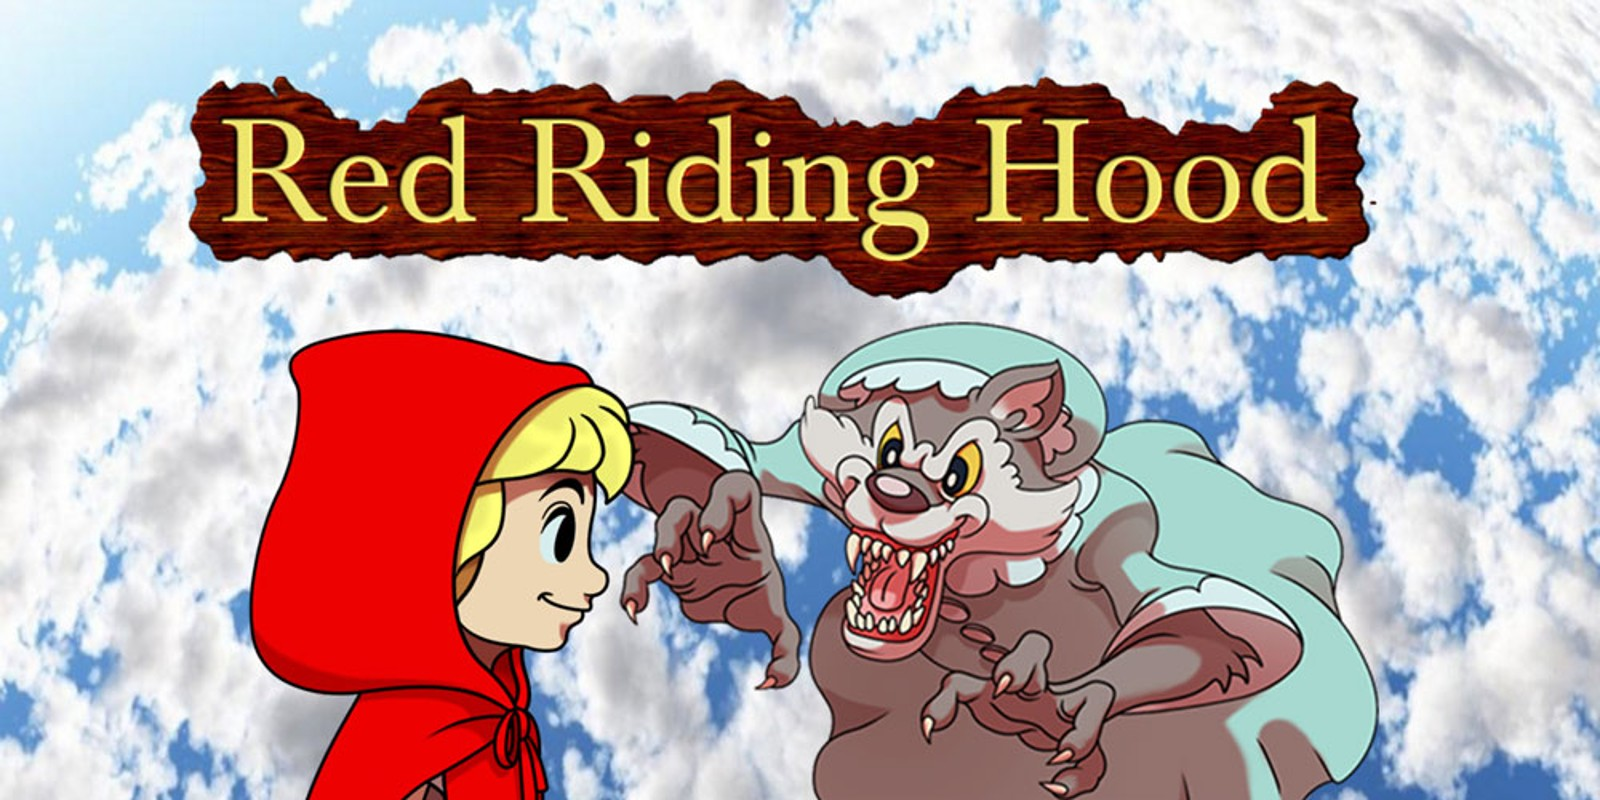 Red Riding Hood | Wii U download software | Games | Nintendo